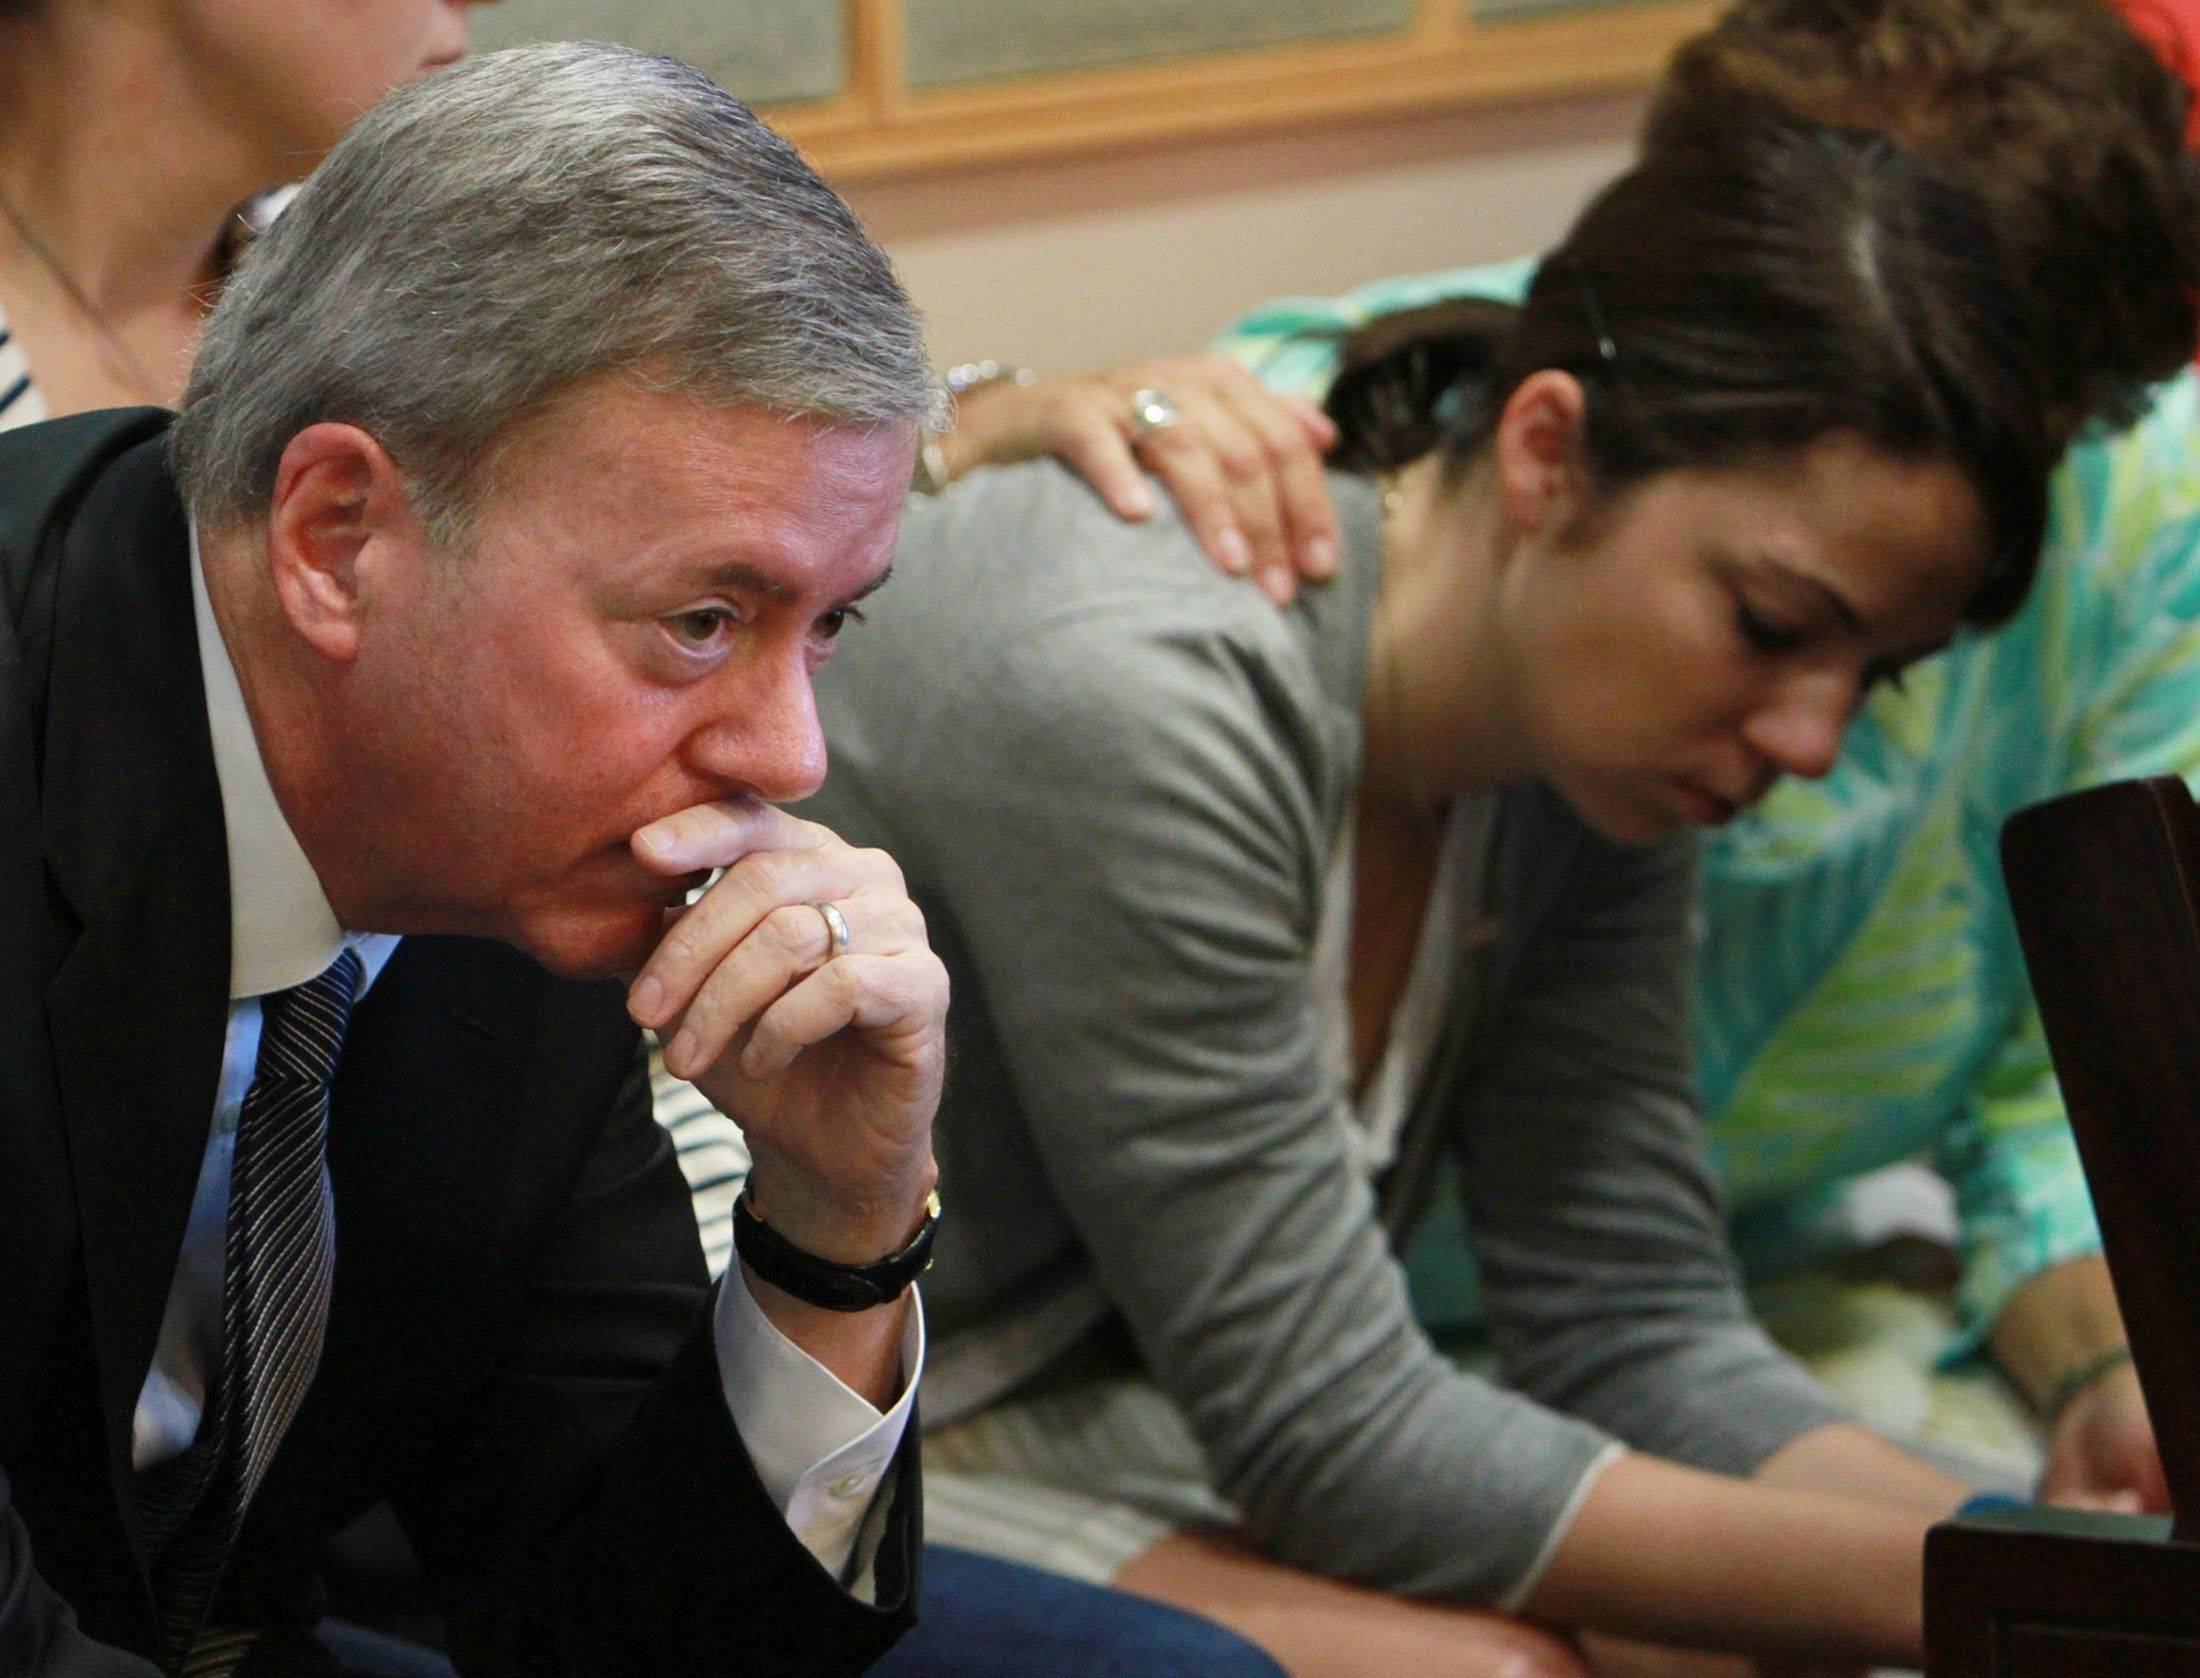 Robert Ward and his daughter Mallory wait Saturday as the jury in his murder trial returns to court.